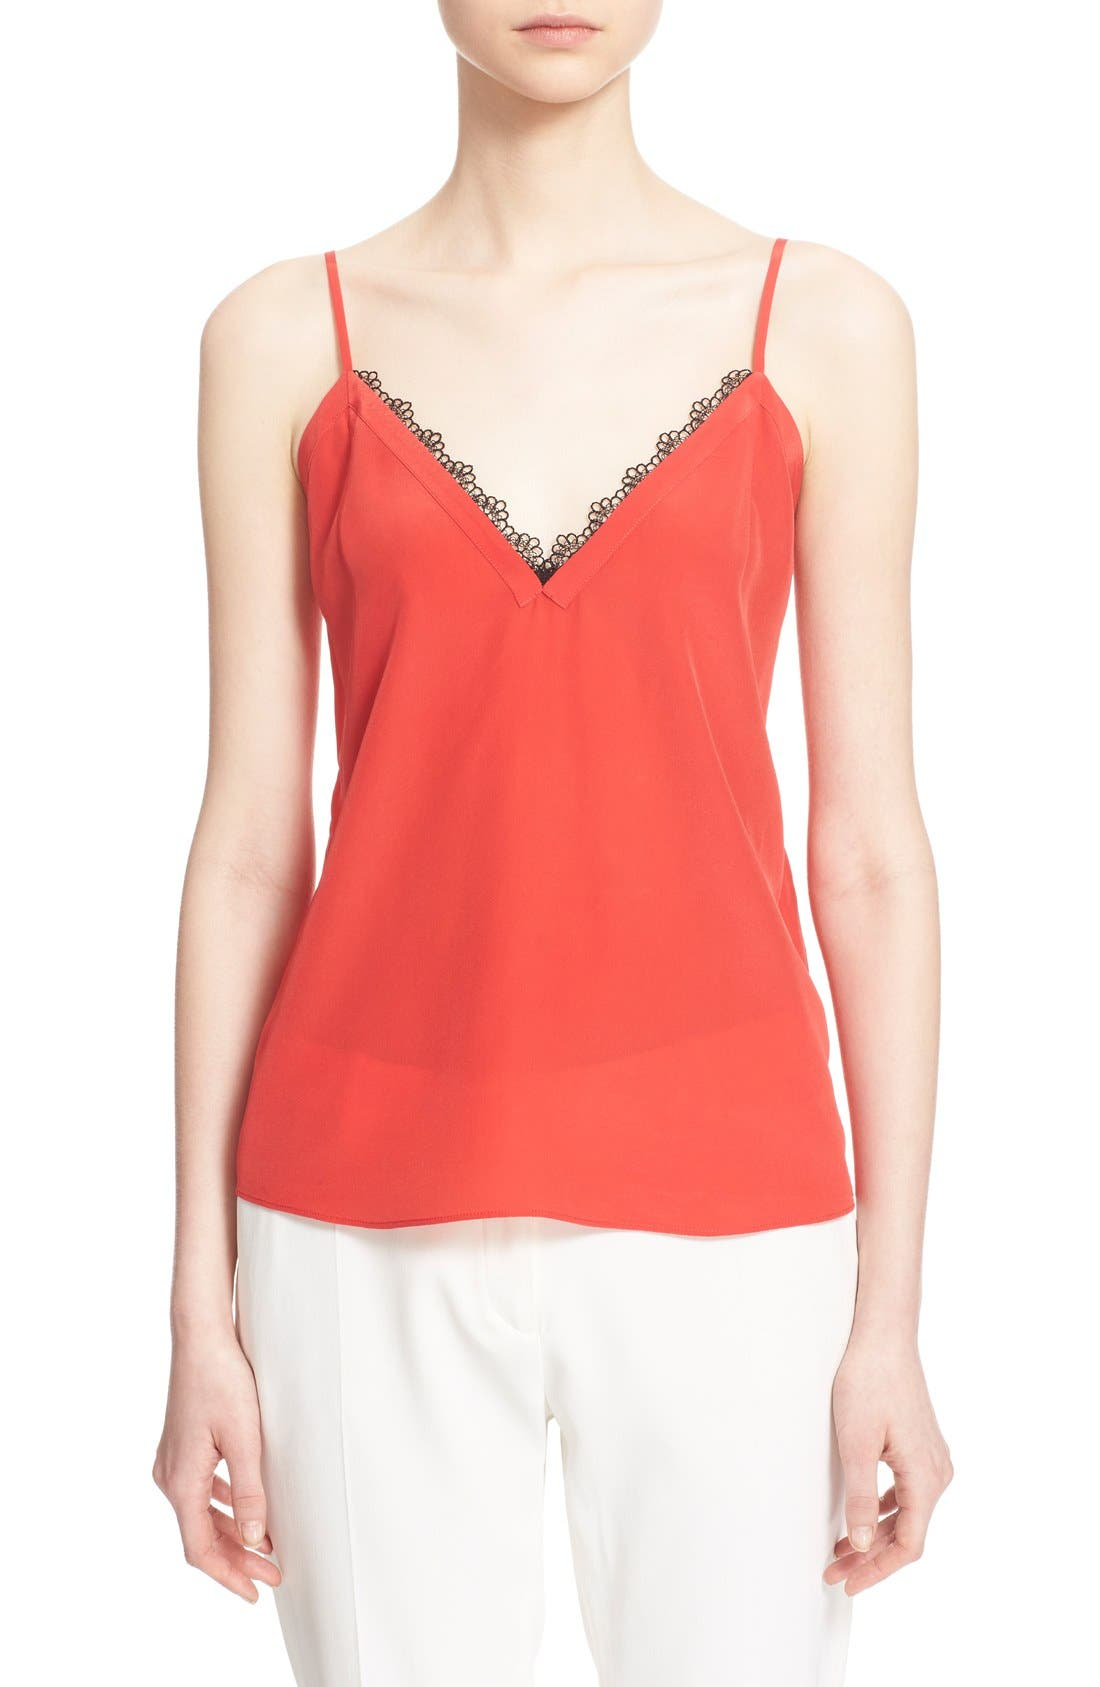 Alternate Image 1 Selected - The Kooples Lace Trim Crêpe de Chine Camisole